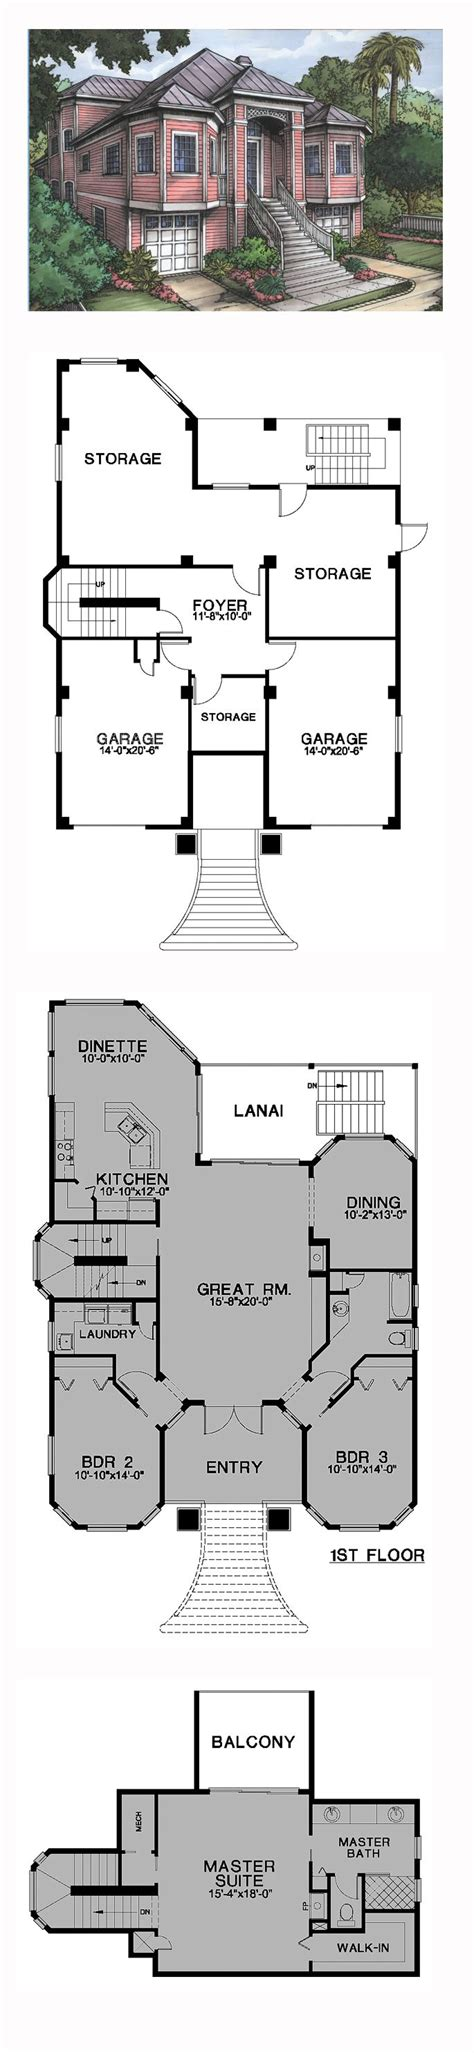 cracker house plans 100 ideas to try about florida cracker house plans cool